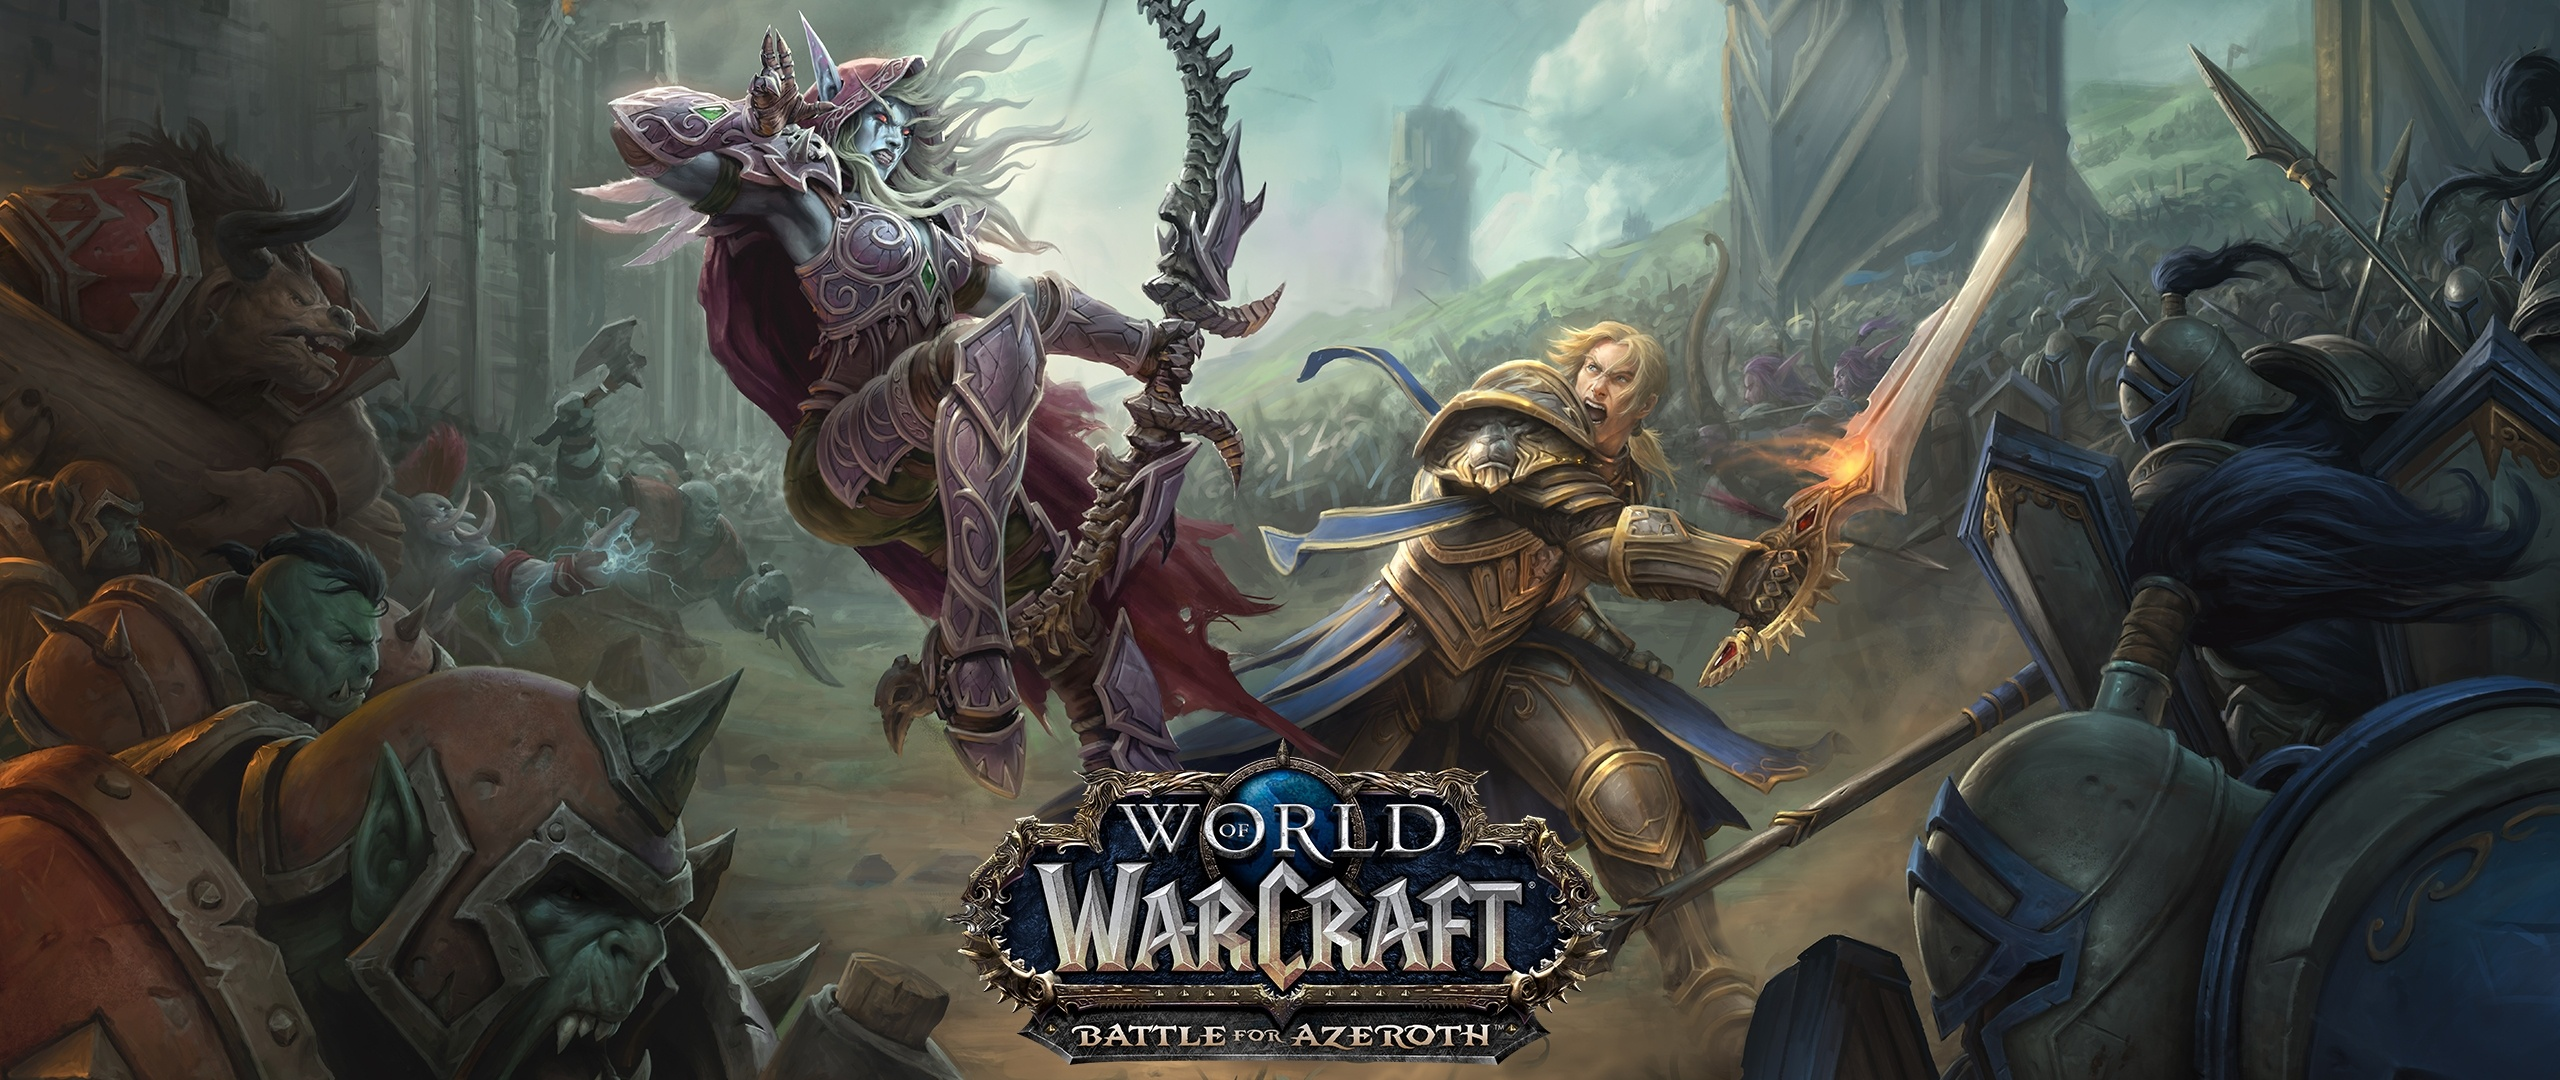 Battle for Azeroth: Next WoW Expansion Revealed at BlizzCon 2017